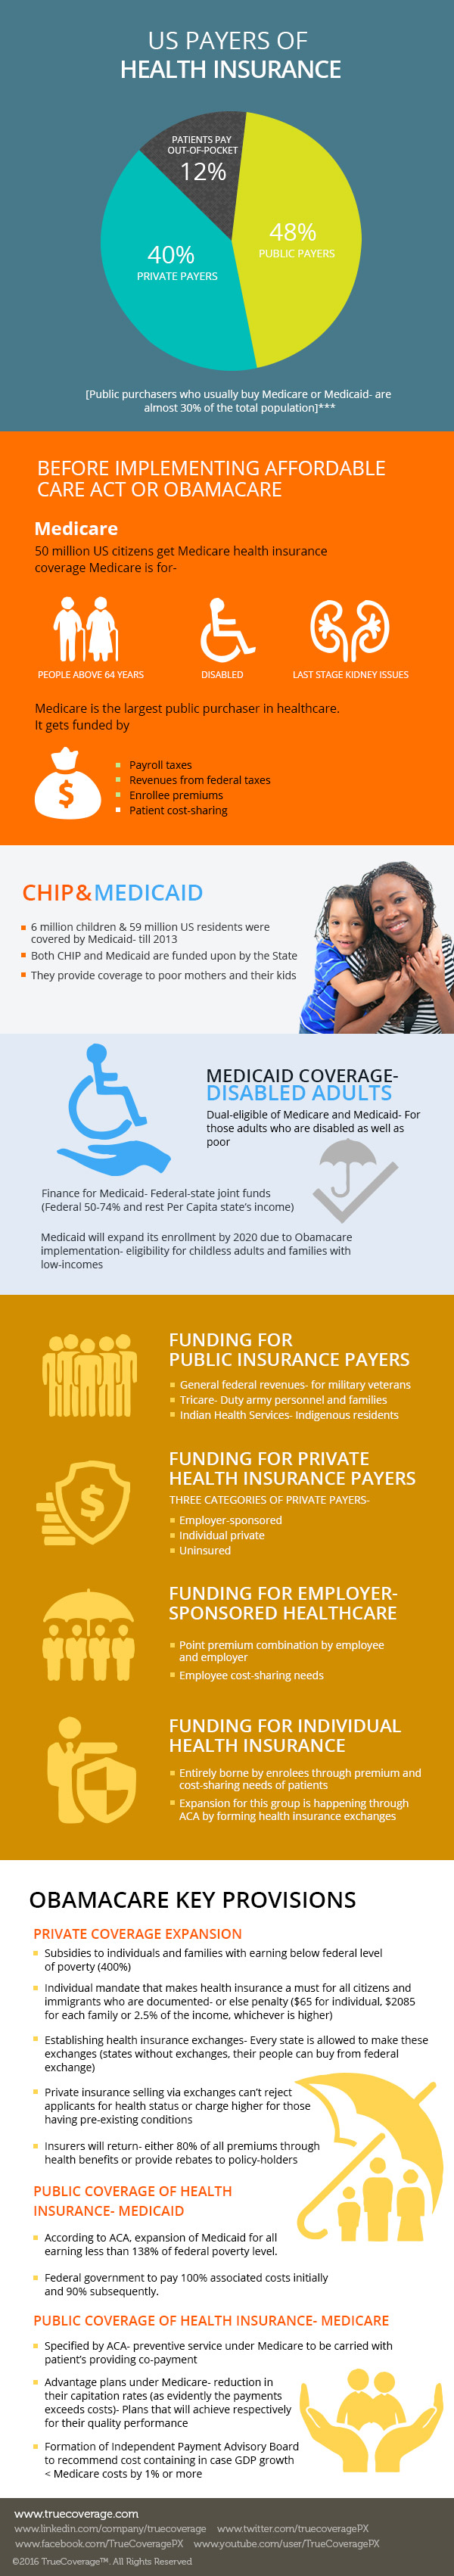 Health Insurance Payers Data Of Usa Get The Number Of Enrolment